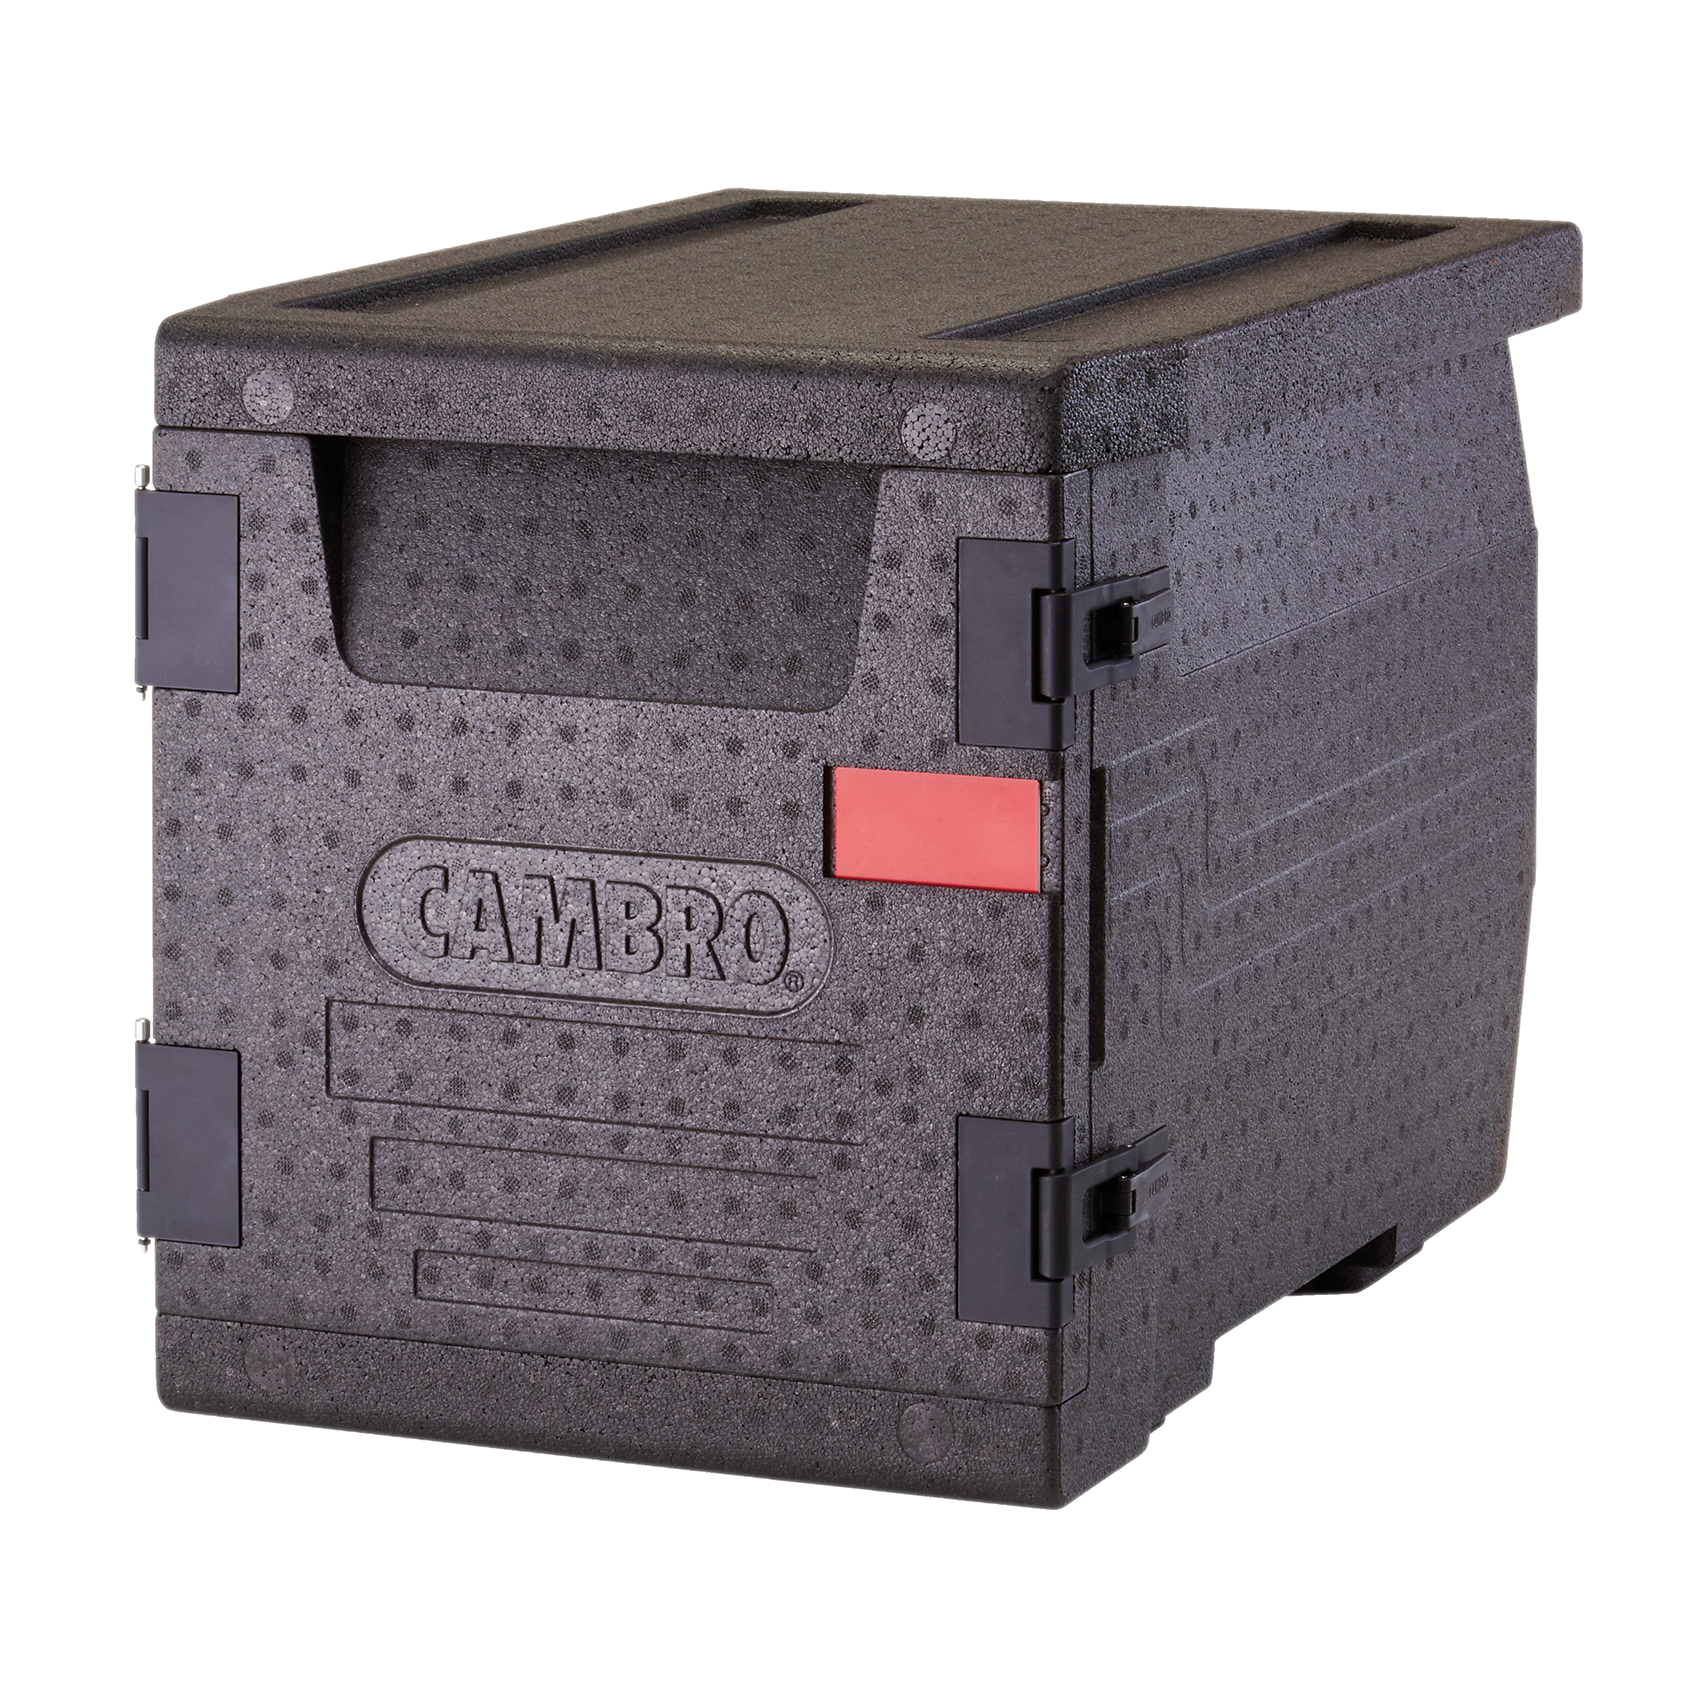 Cambro EPP300110 food carrier, insulated plastic